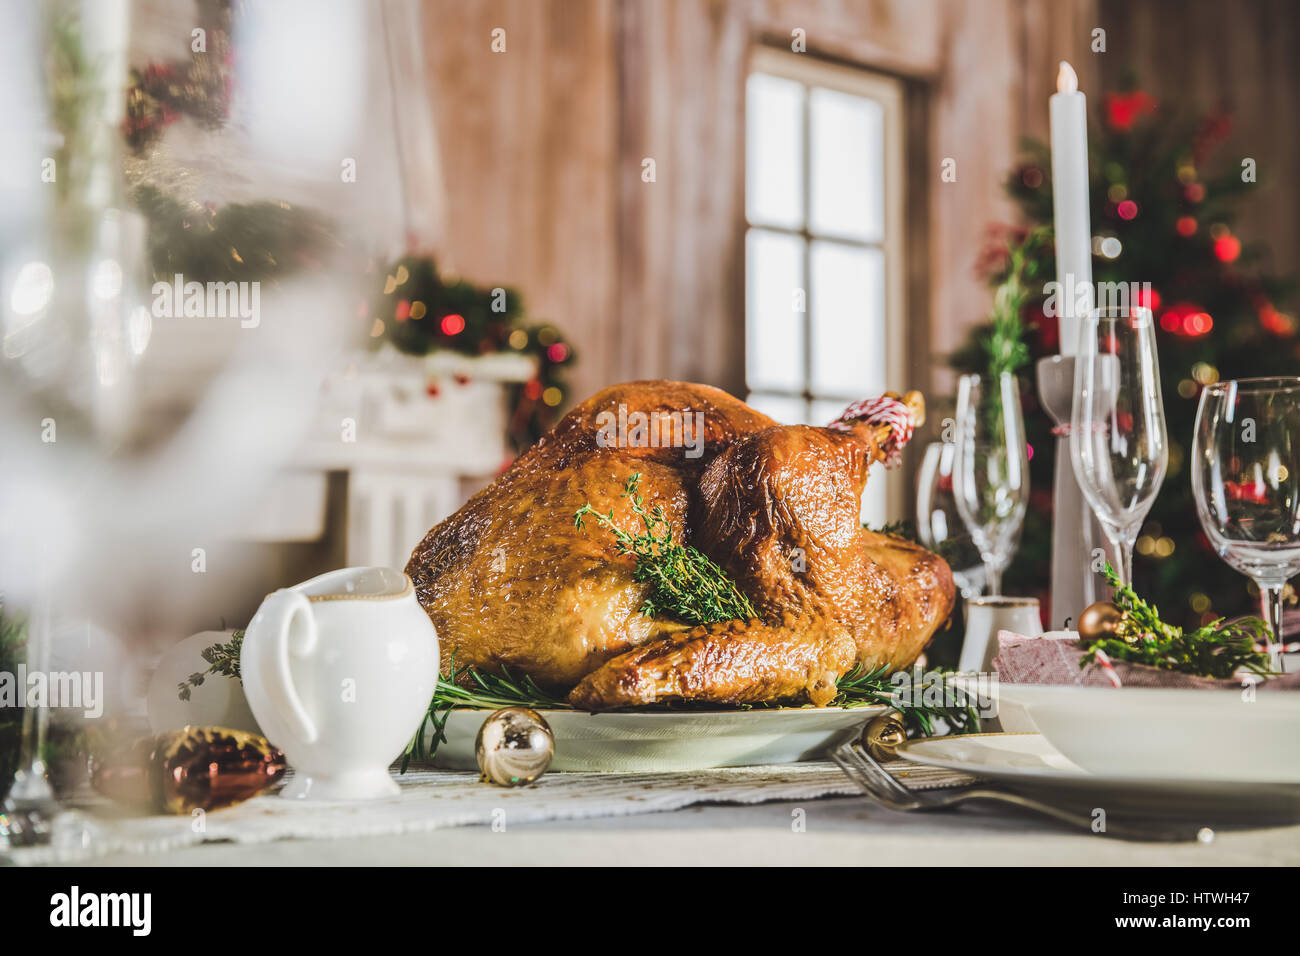 Delicious roasted turkey on served holiday table - Stock Image